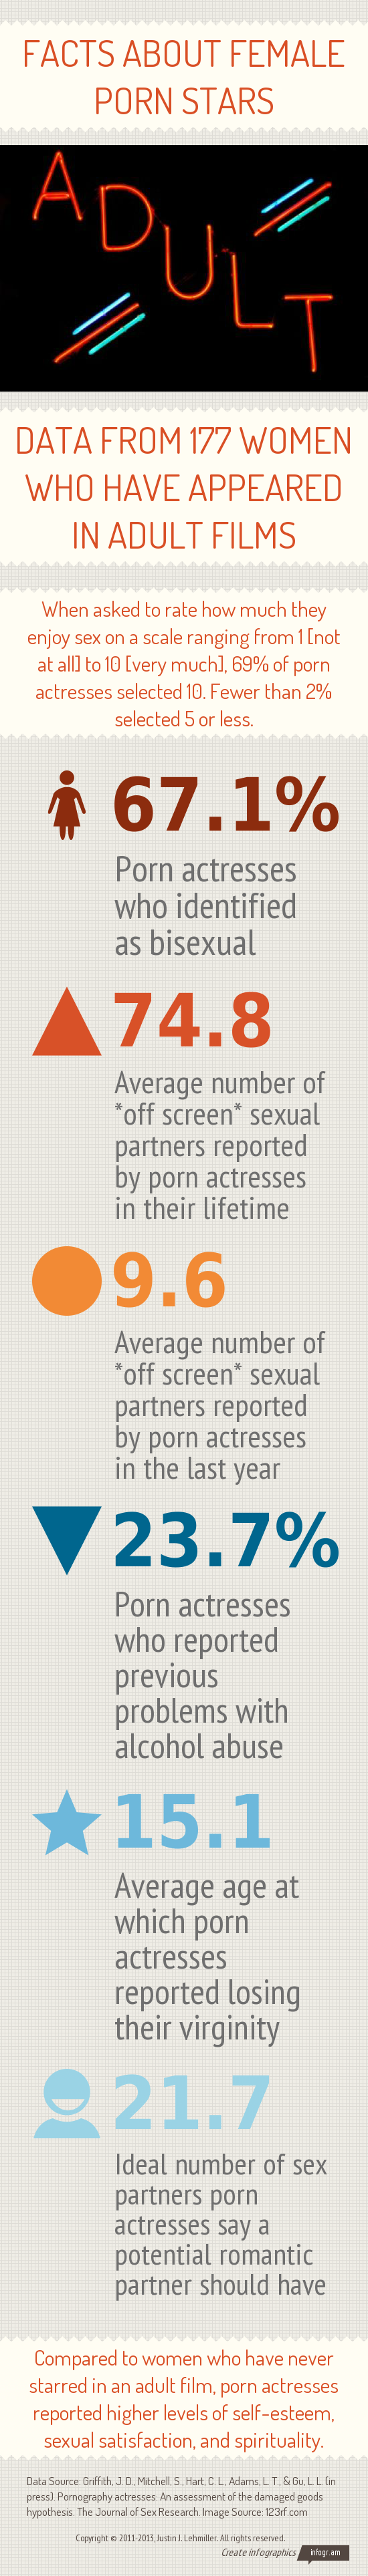 Facts About Female Porn Star.png